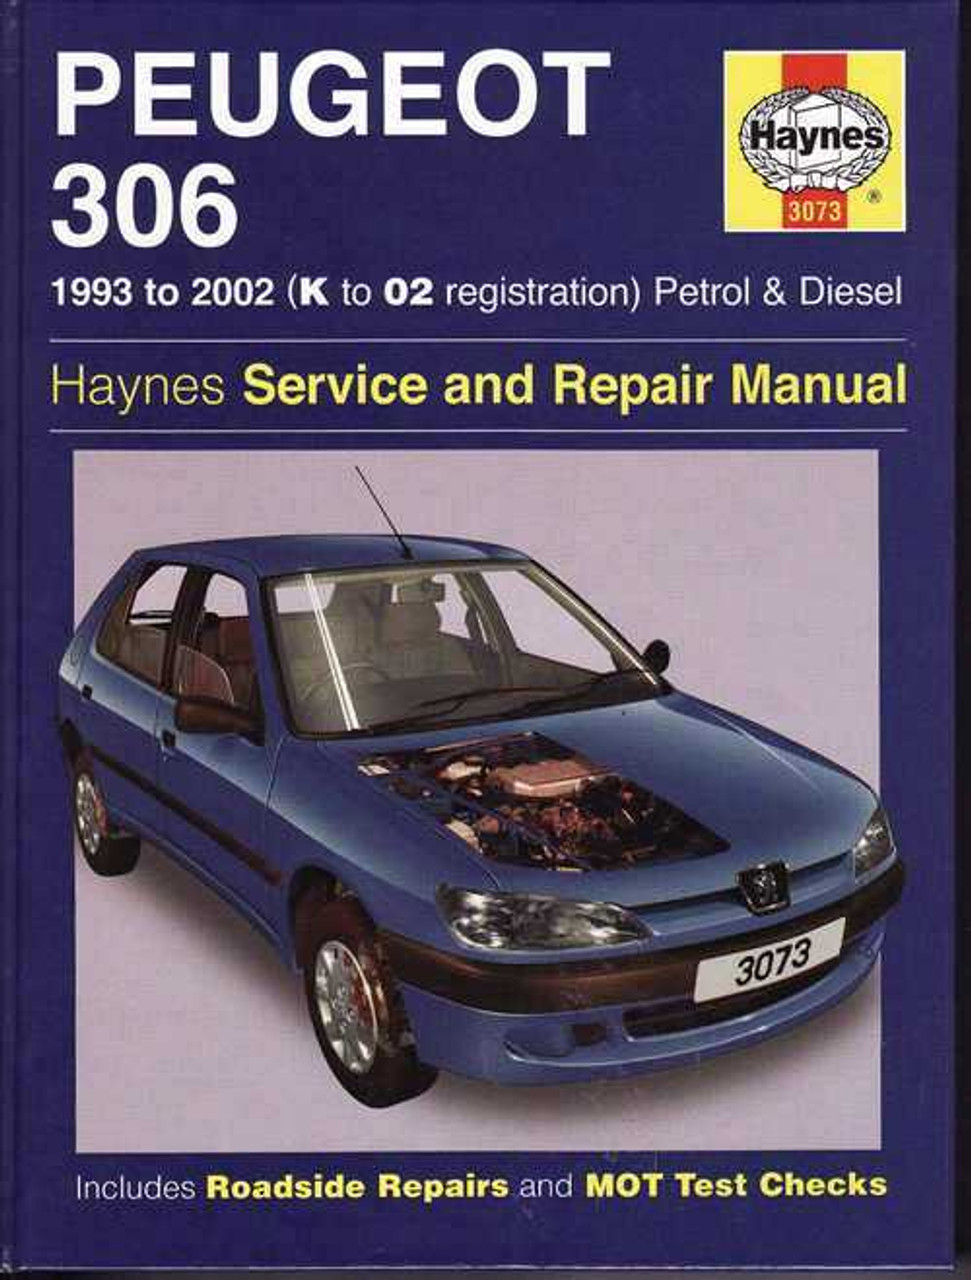 peugeot 306 1993 2002 workshop manual rh automotobookshop com au service manual peugeot 306 pdf service manual peugeot 306 pdf